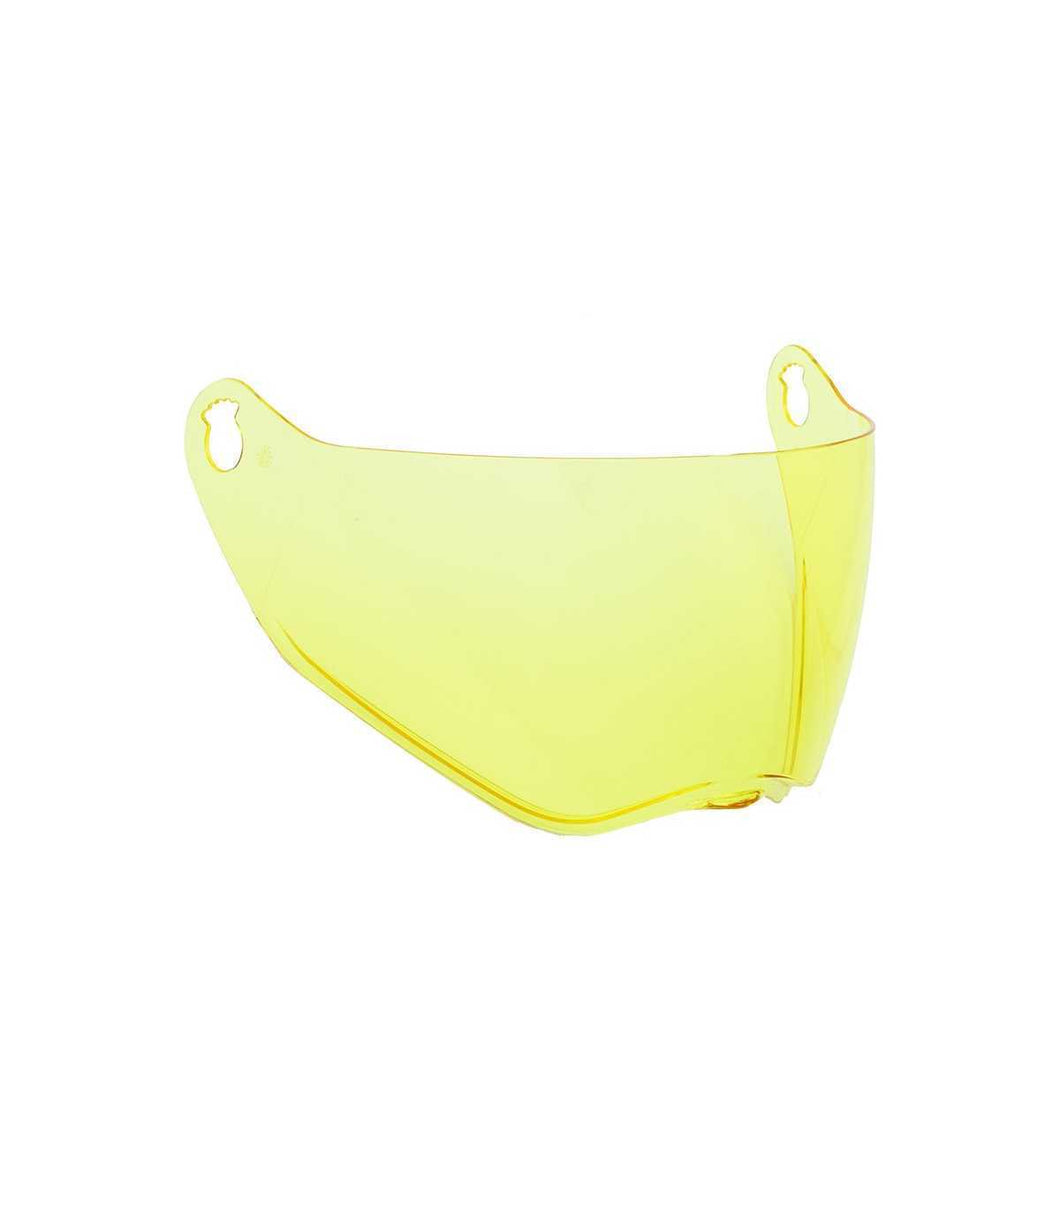 BELL MX-9 ADVENTURE HI-DEF YELLOW VISOR